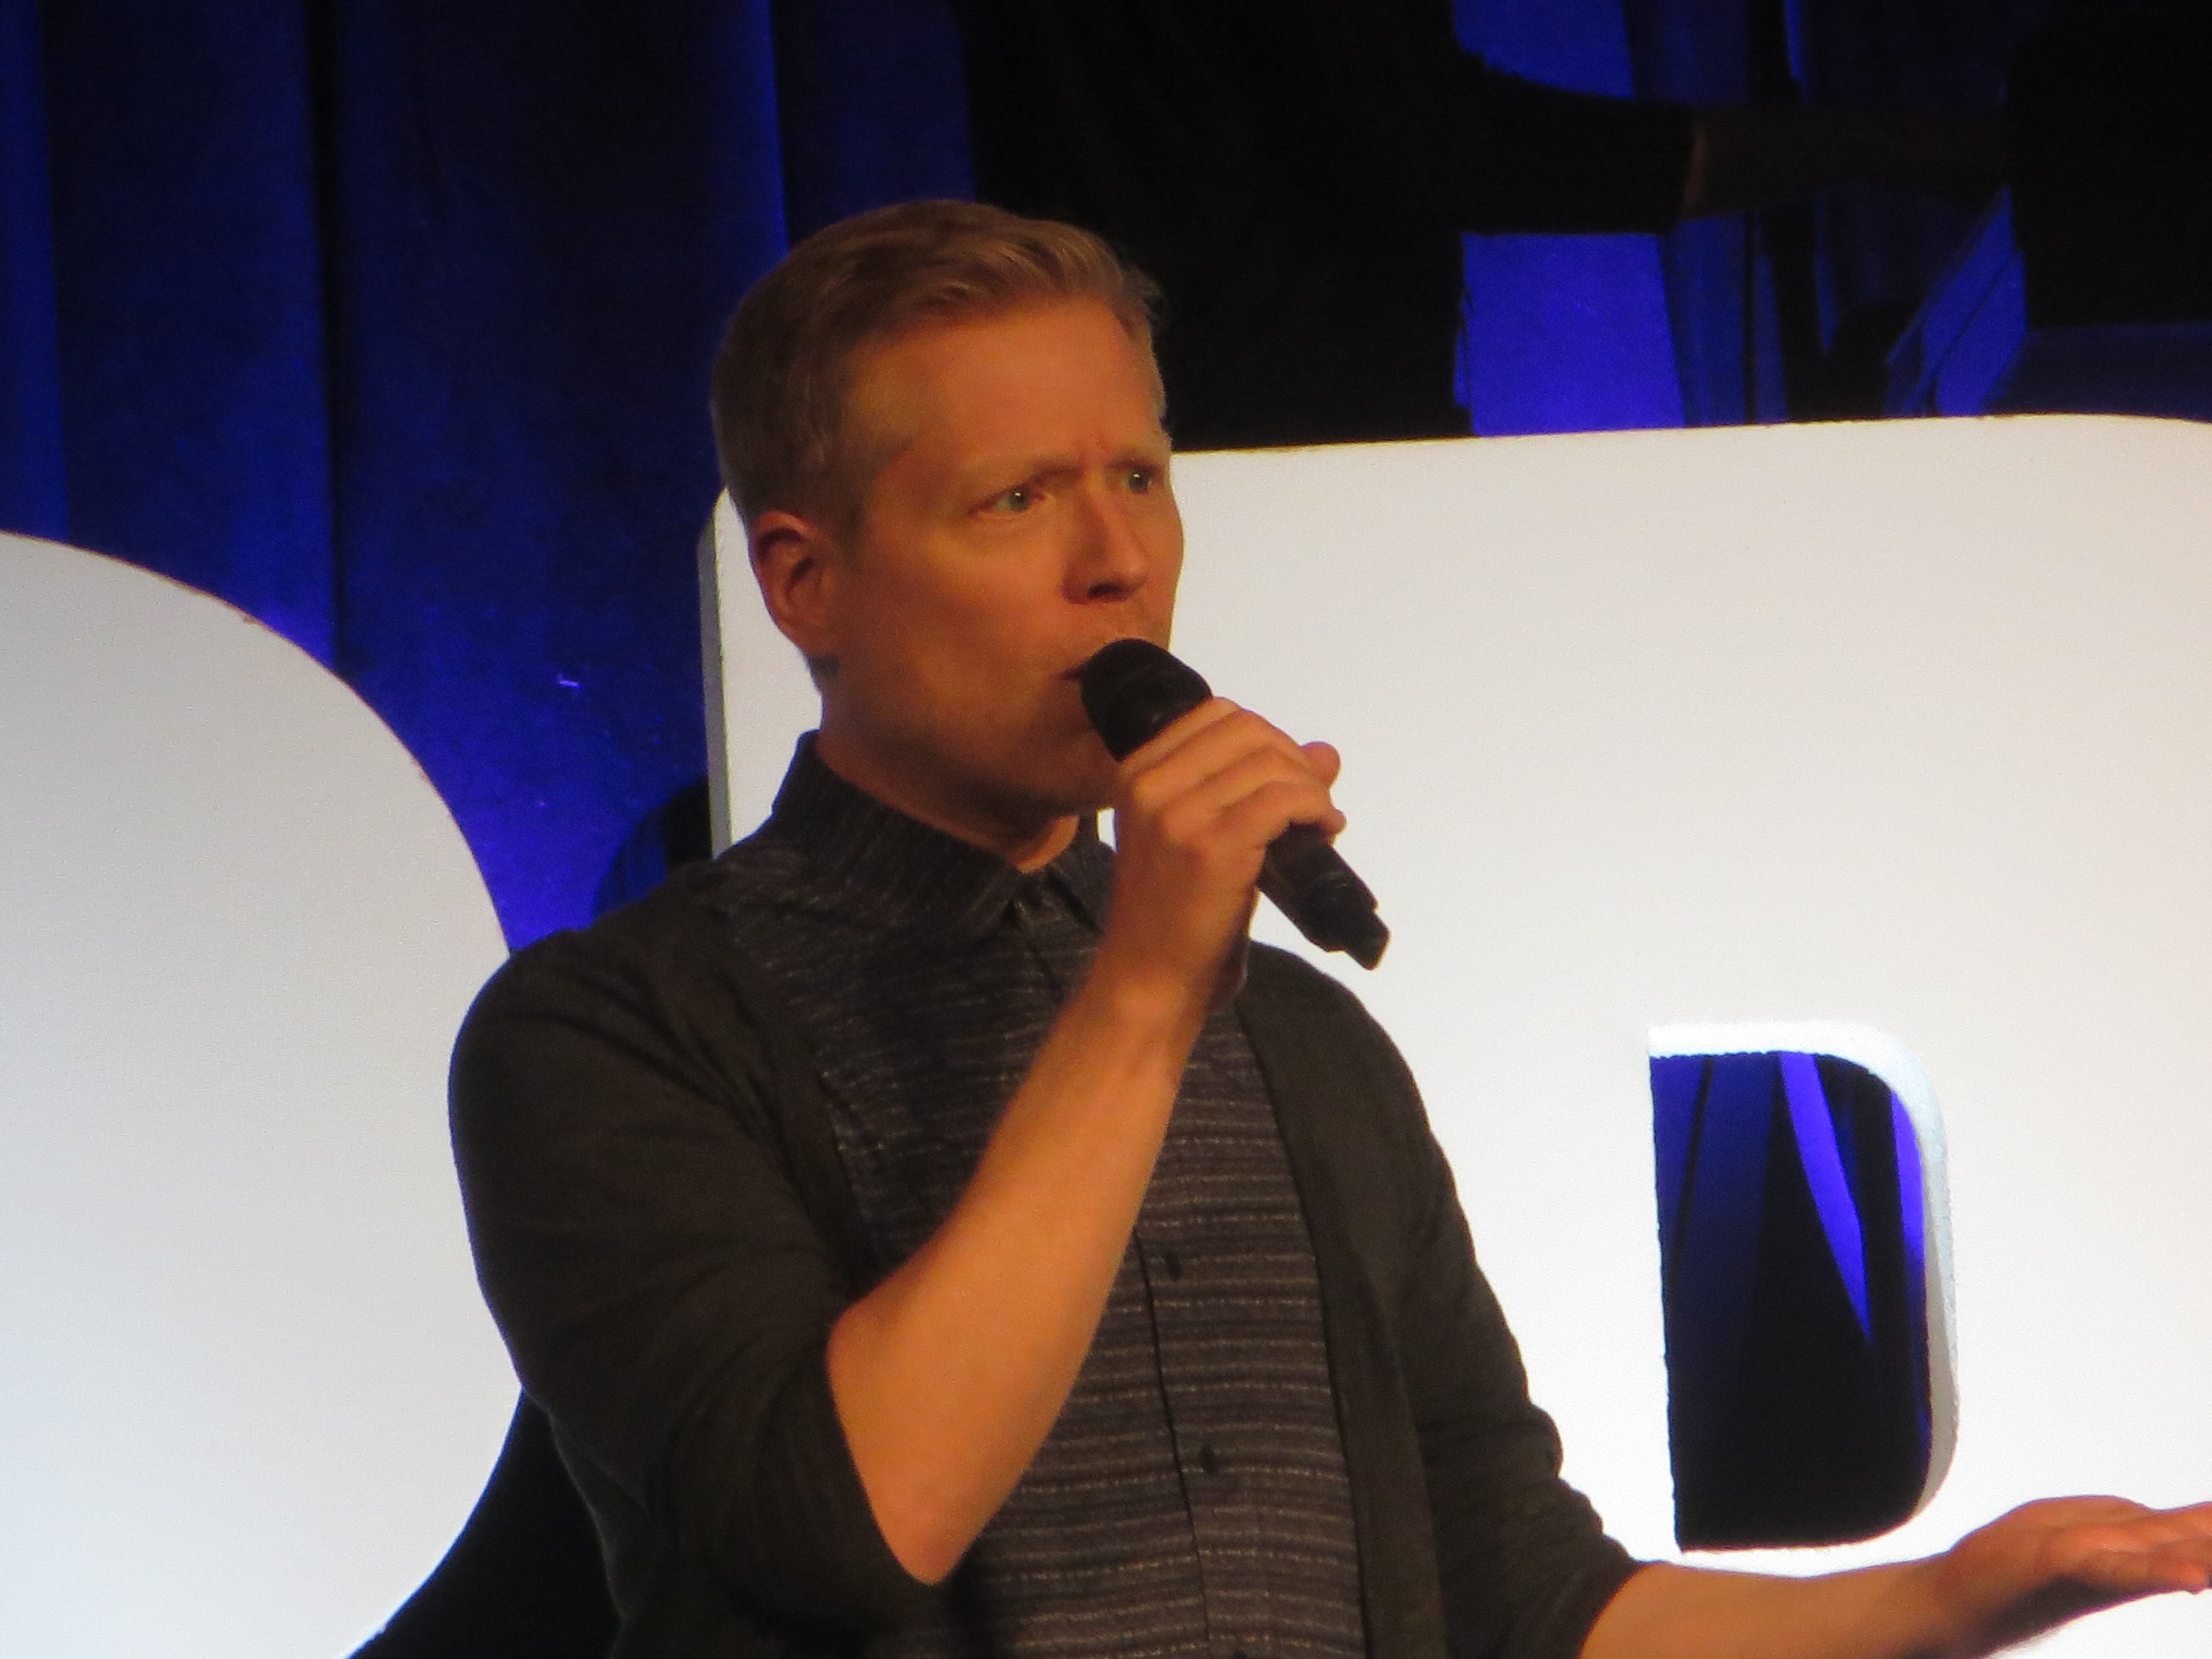 Co-founder Anthony Rapp speaks during the opening ceremony at BroadwayCon 2019, held Jan. 11 to 13, 2019, at the New York Hilton Midtown in Manhattan.